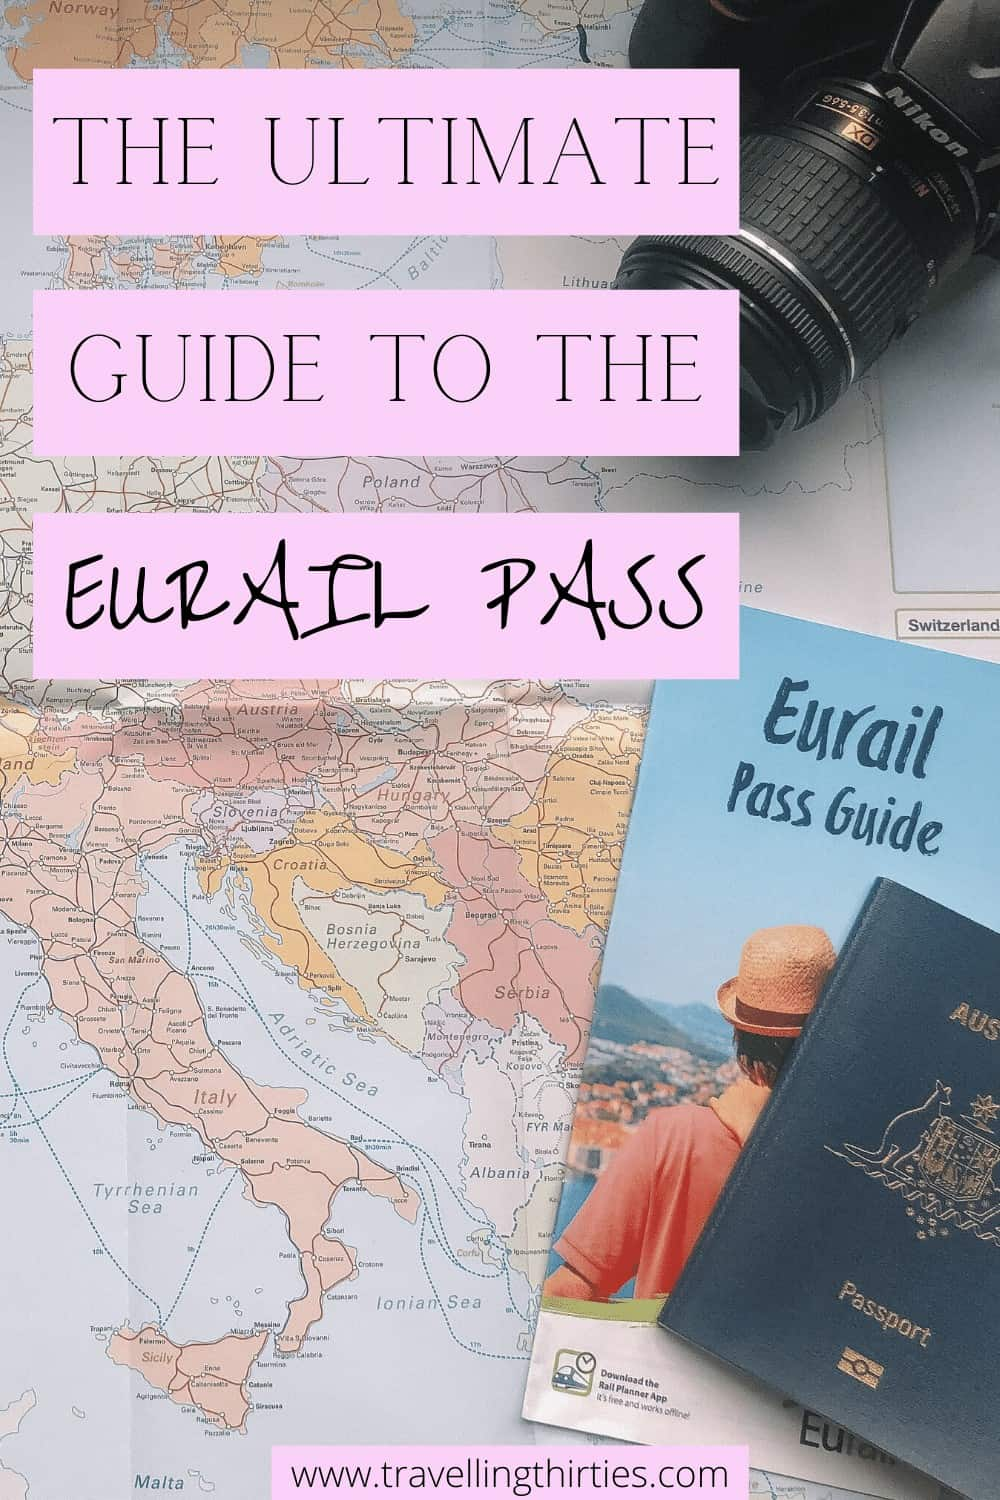 Pinterest Graphic showing the Eurail Pass Guide, Australian Passport and Camera on a Eurail Map